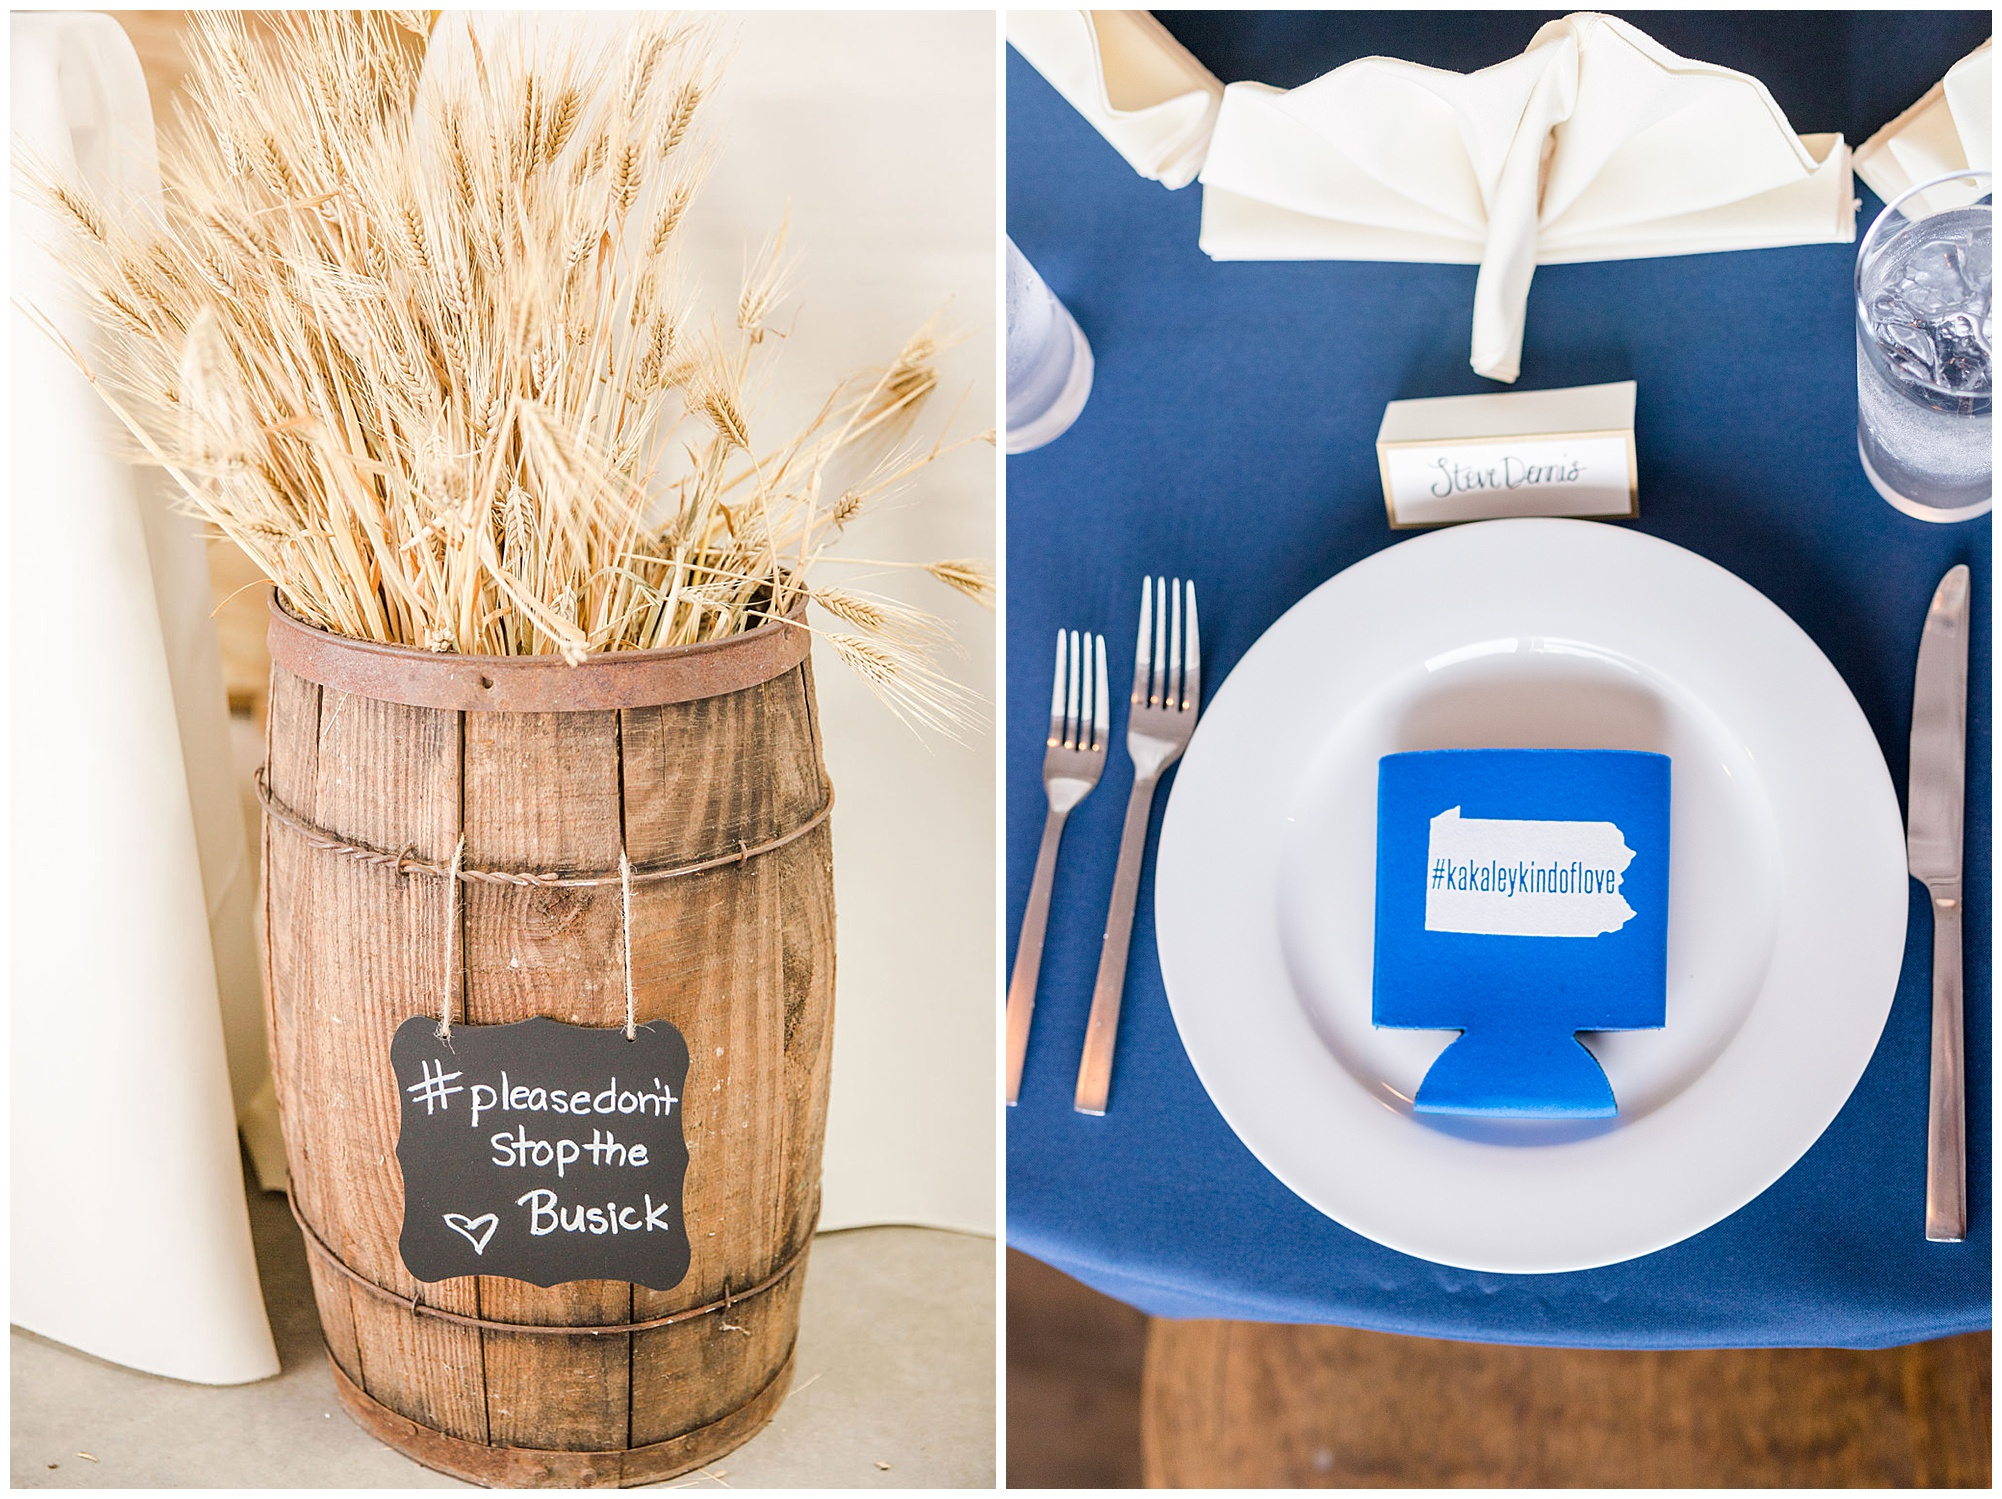 Cute ideas for using wedding hashtags at your wedding.